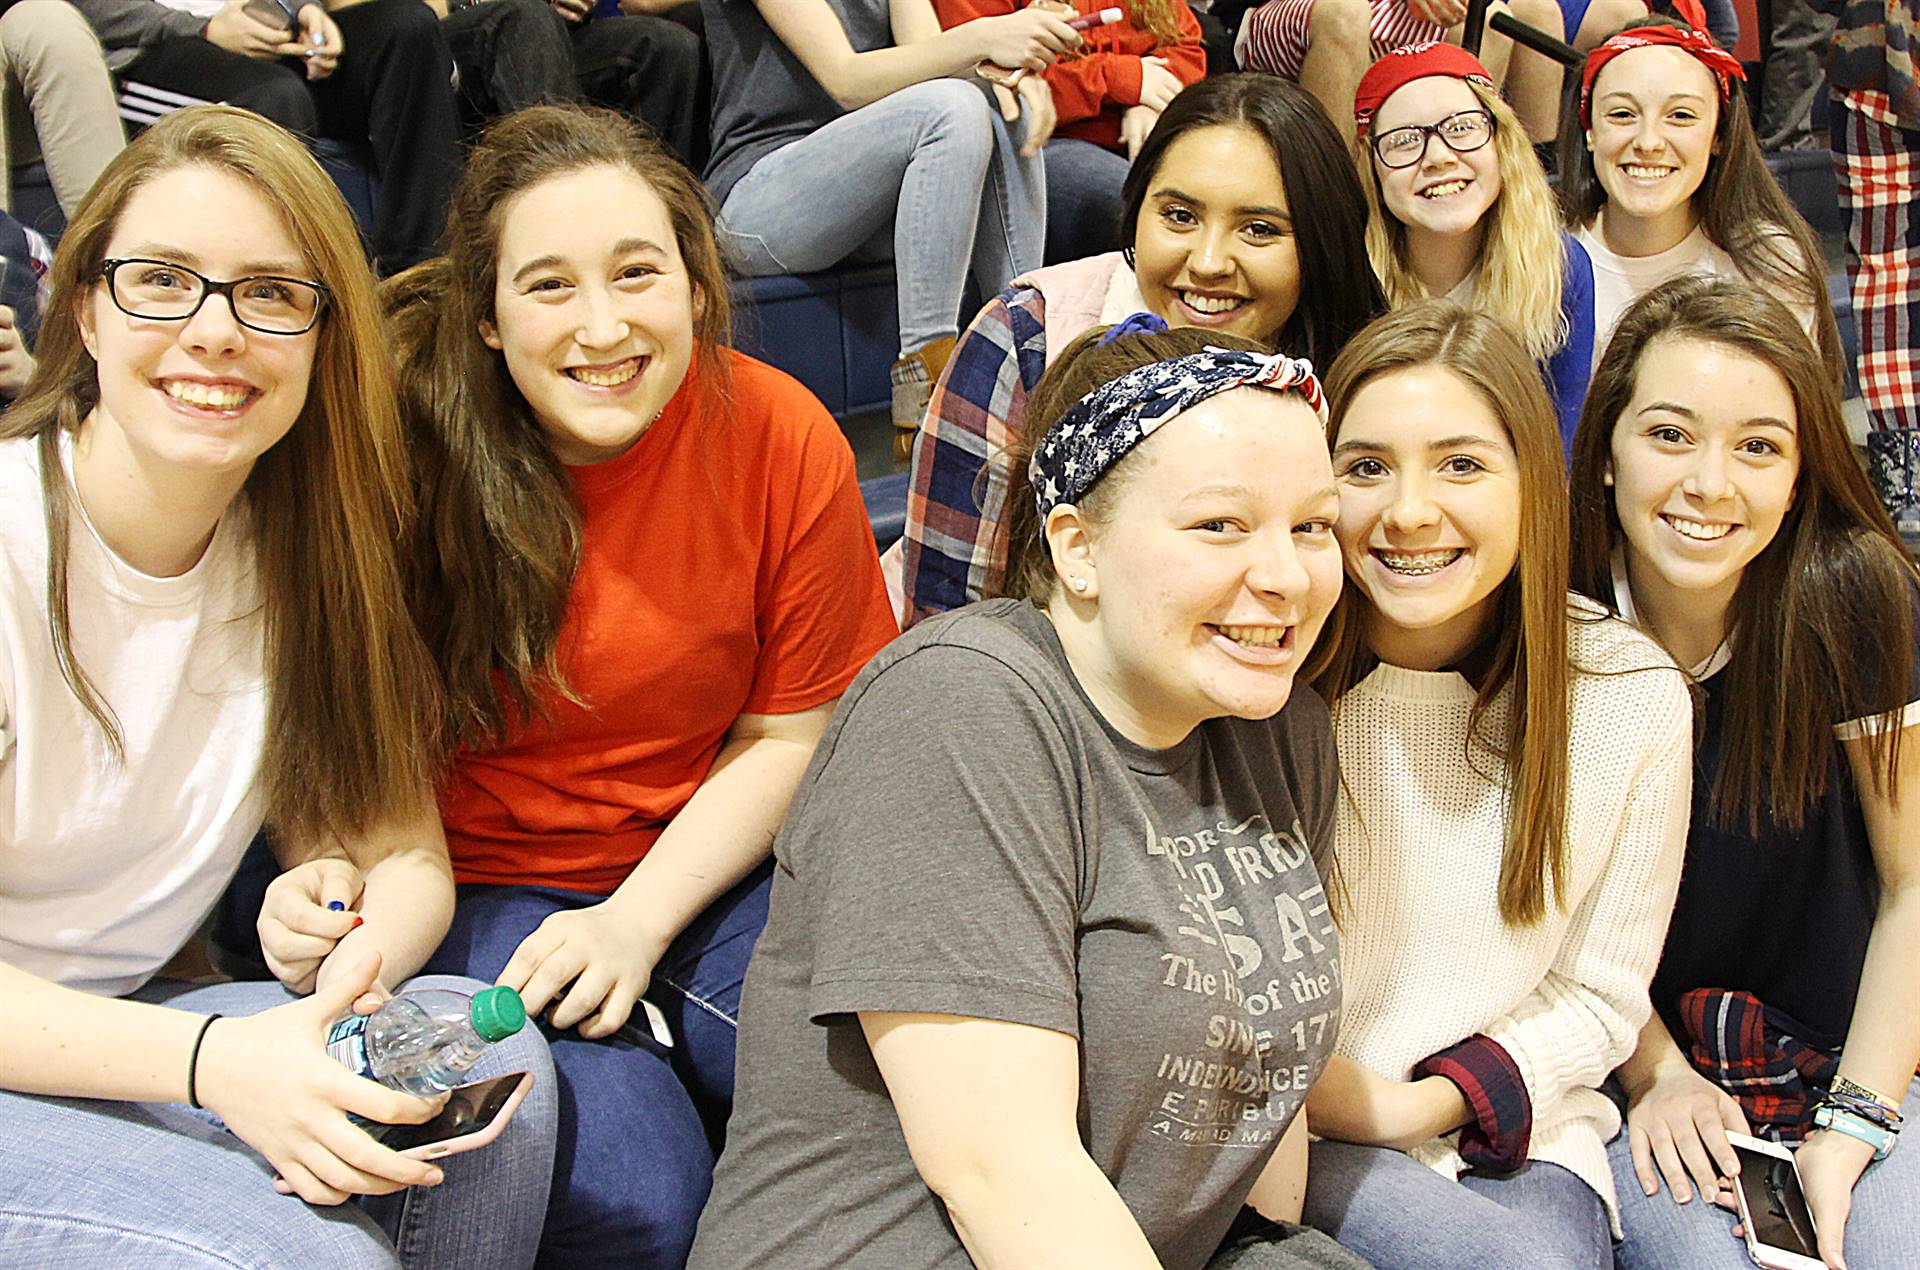 HS Girls at the Game